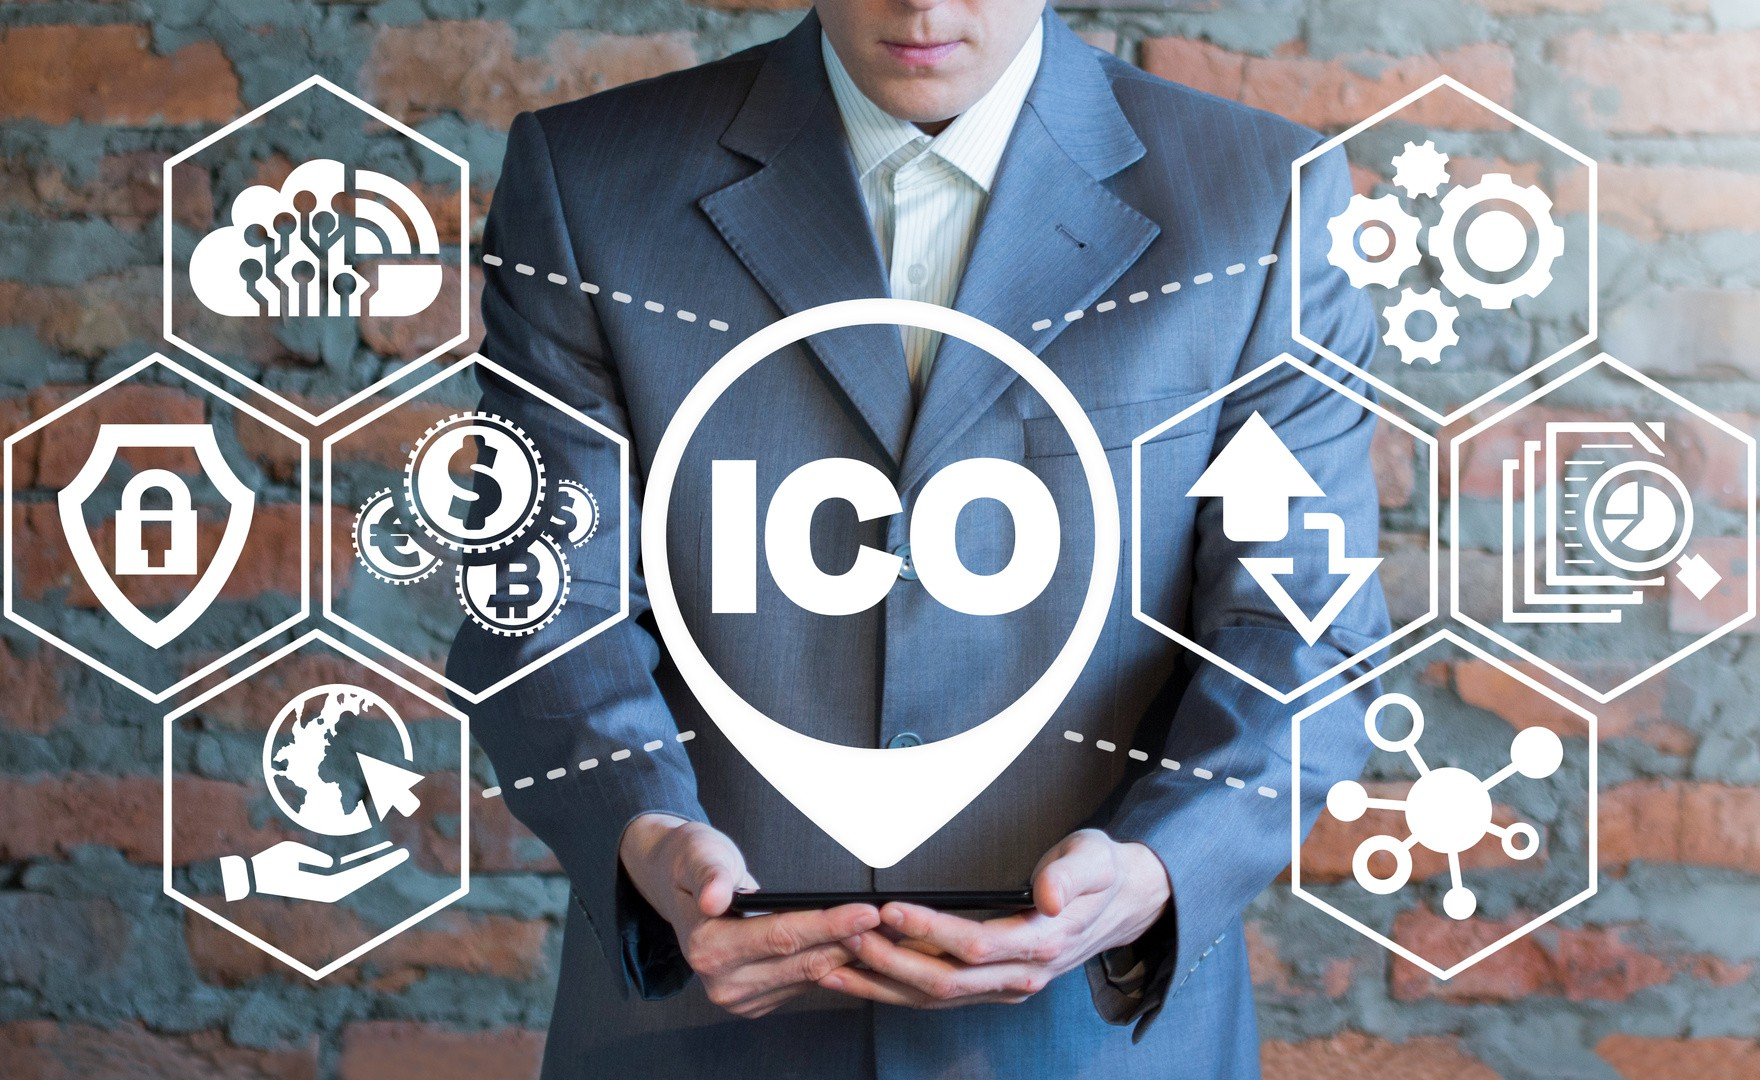 Beneficios de invertir en ico